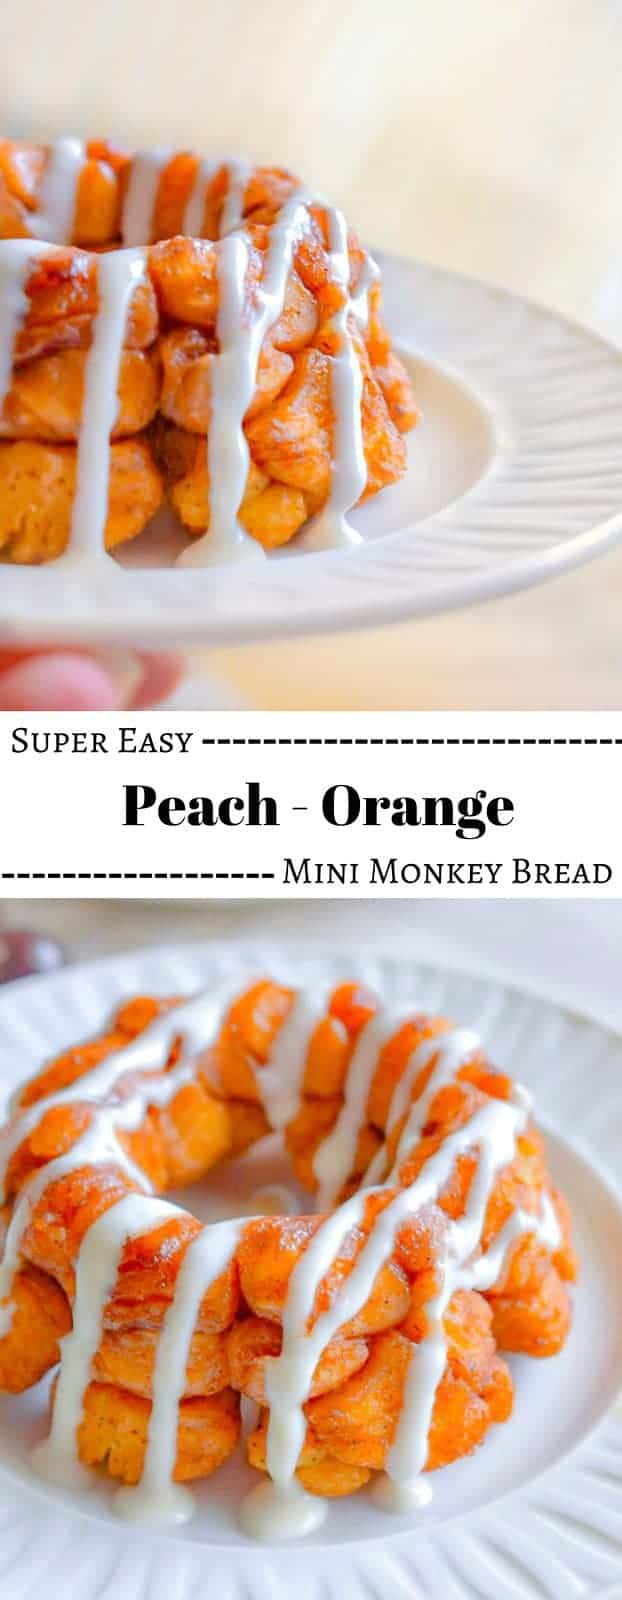 Super Easy Peach Orange Mini Monkey Bread: #monkeybread #peach #orange